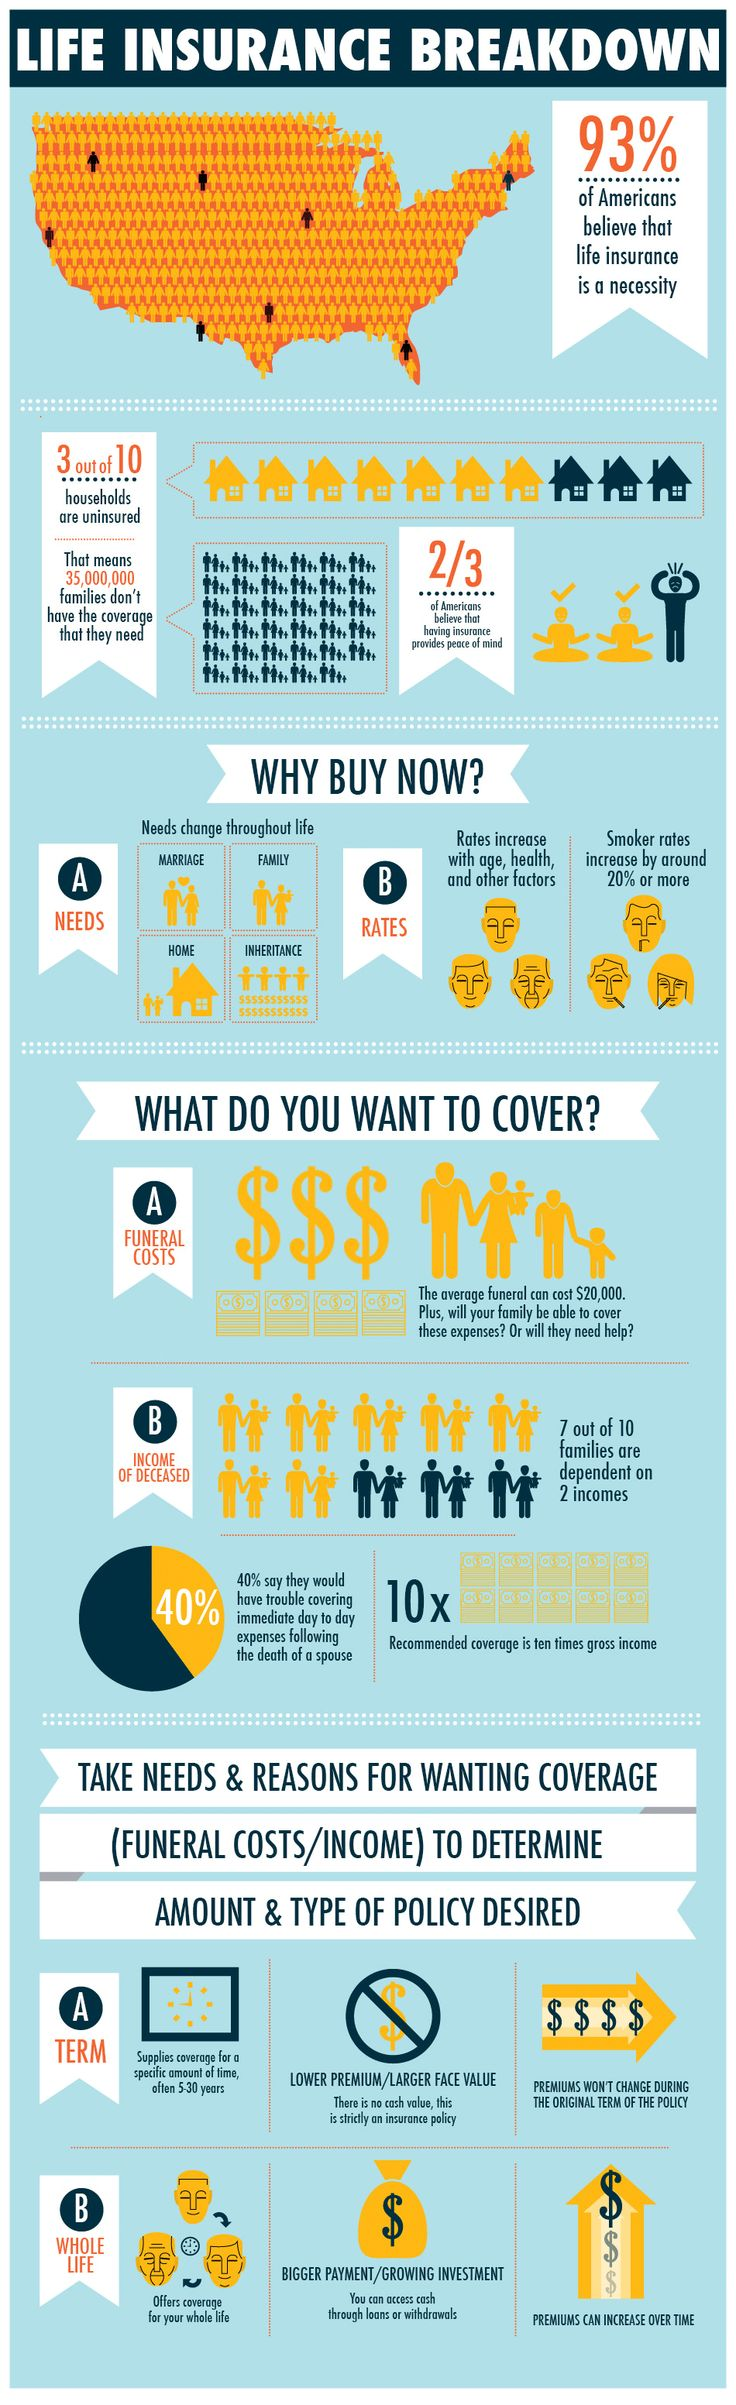 """Whole & Term Life #Insurance Breakdown [#Infographic],"" by placementsmedia"